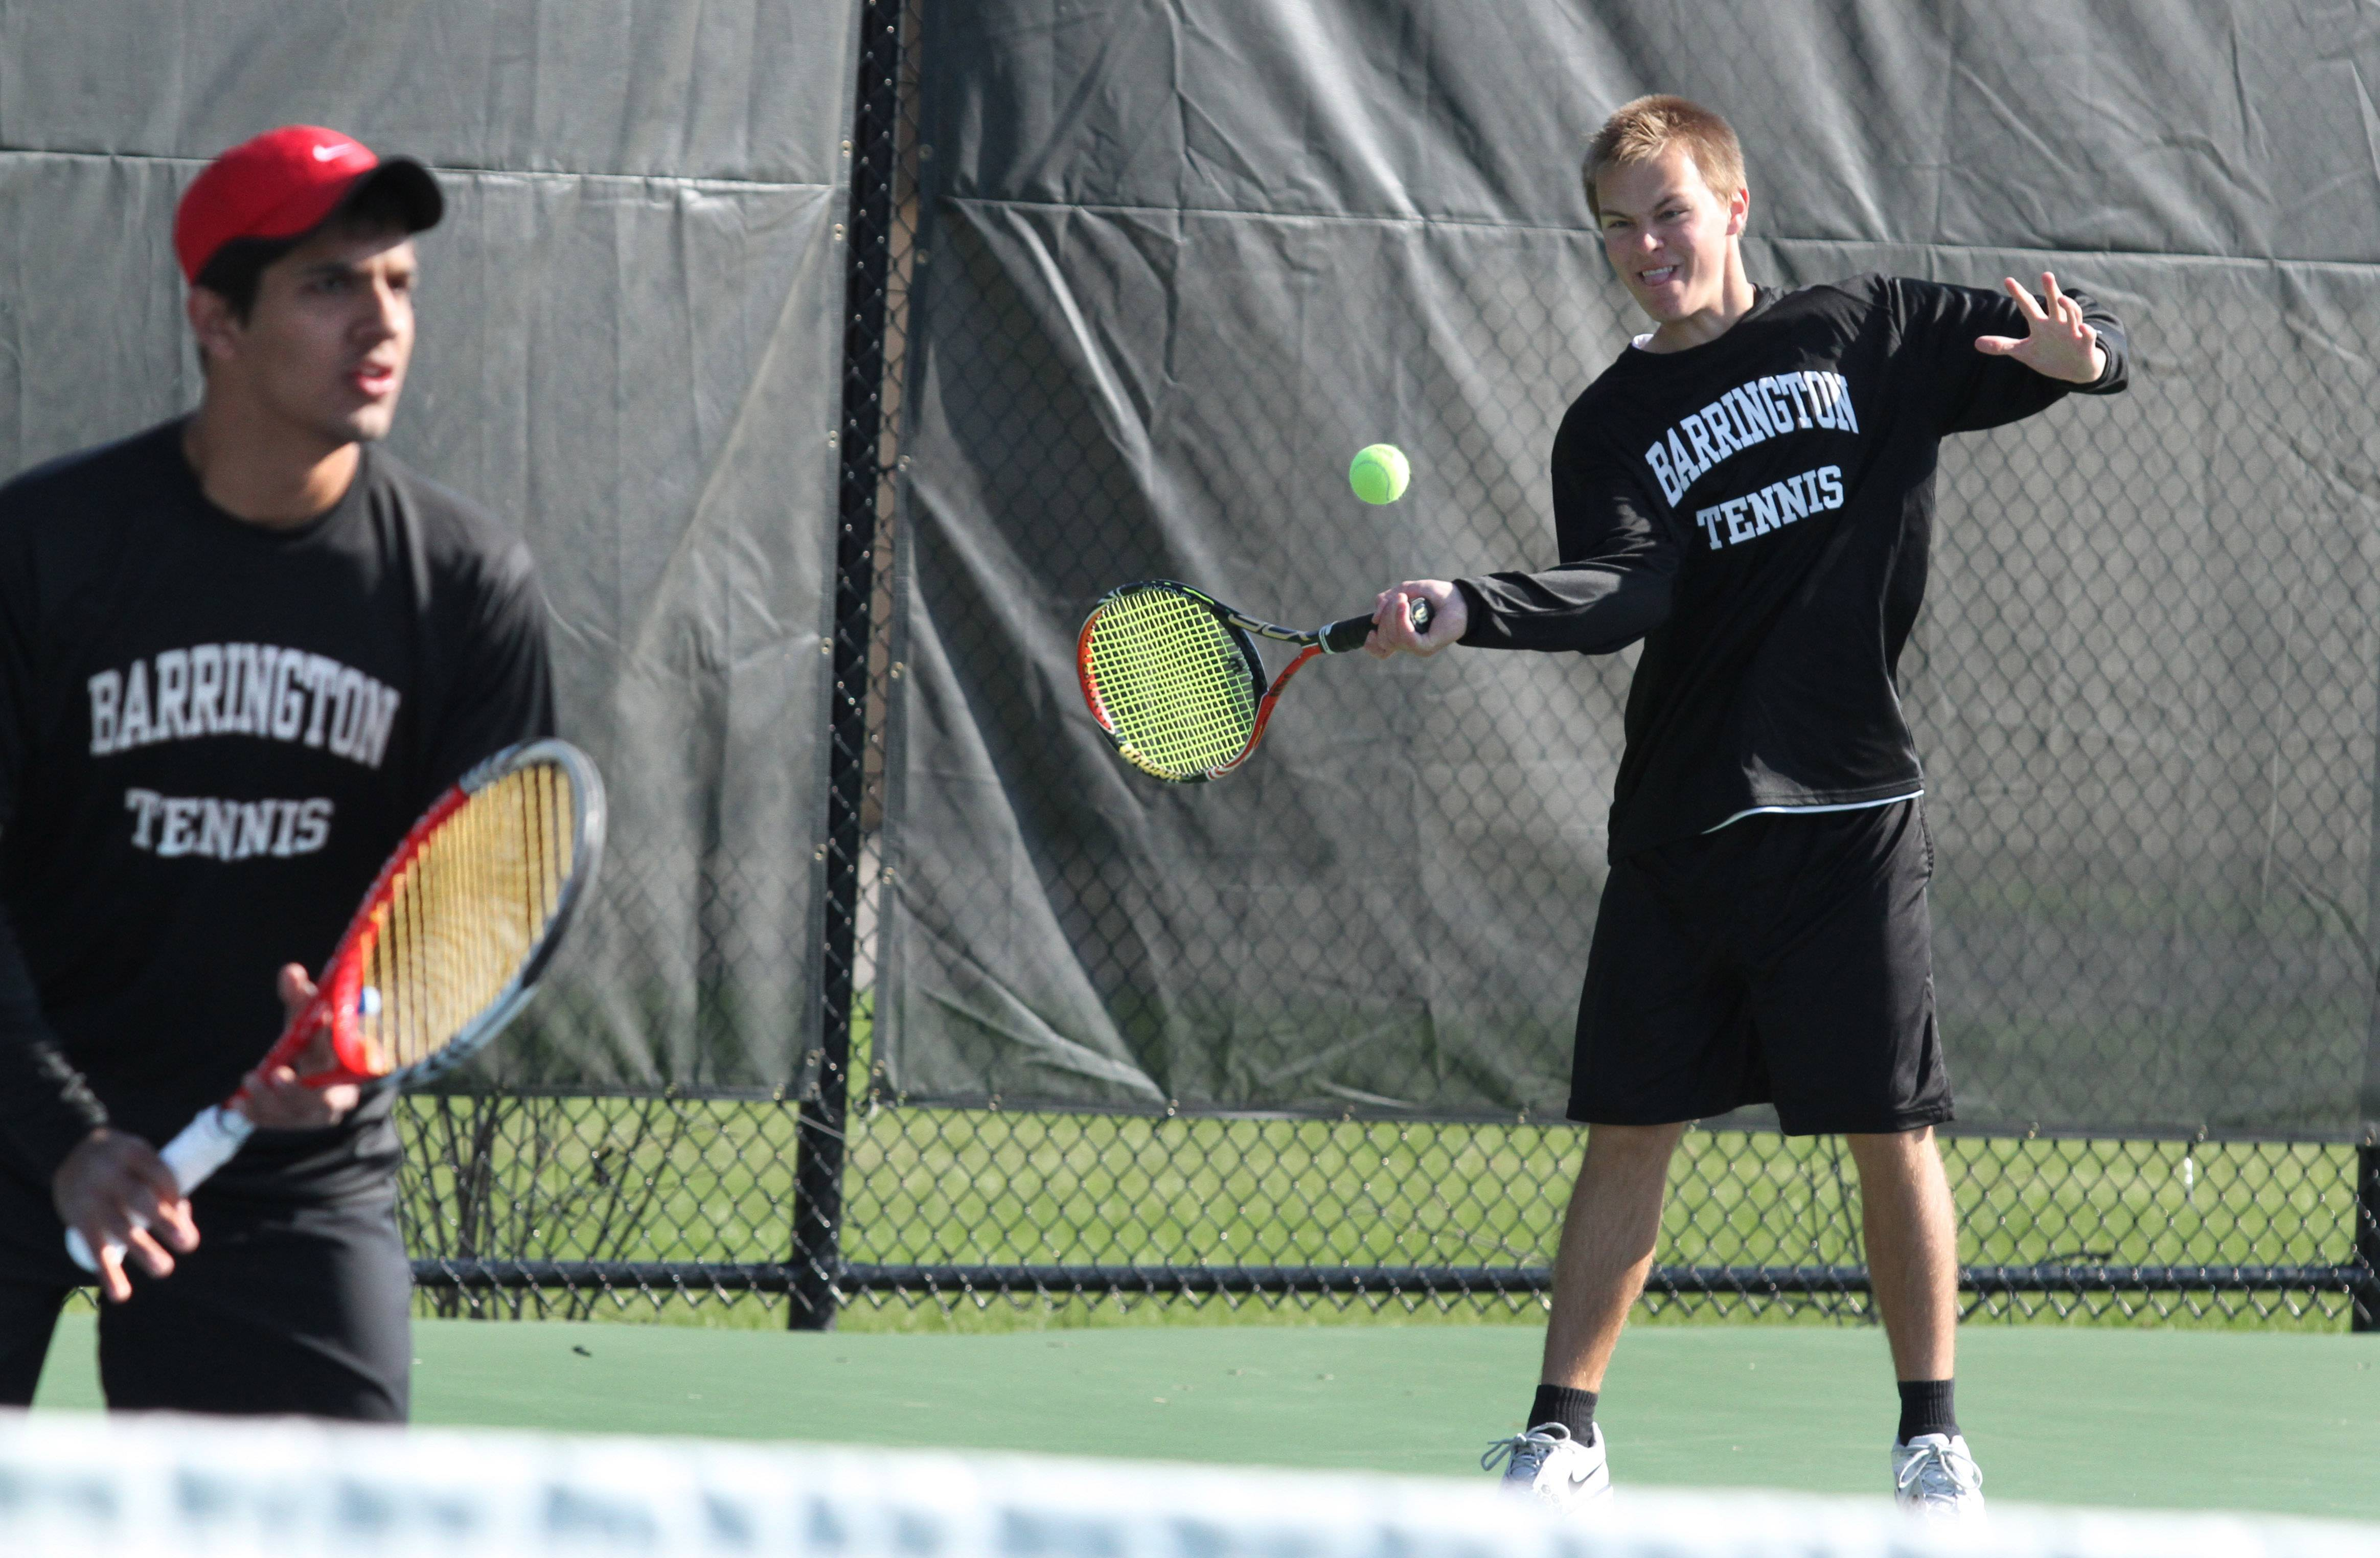 Barrington's doubles team of Scott Apmann, right, and Ishaan Jaglan compete against Warren's Sam Gudeman and John Westerberg at Forest View Racquet Club on Saturday in Arlington Heights.